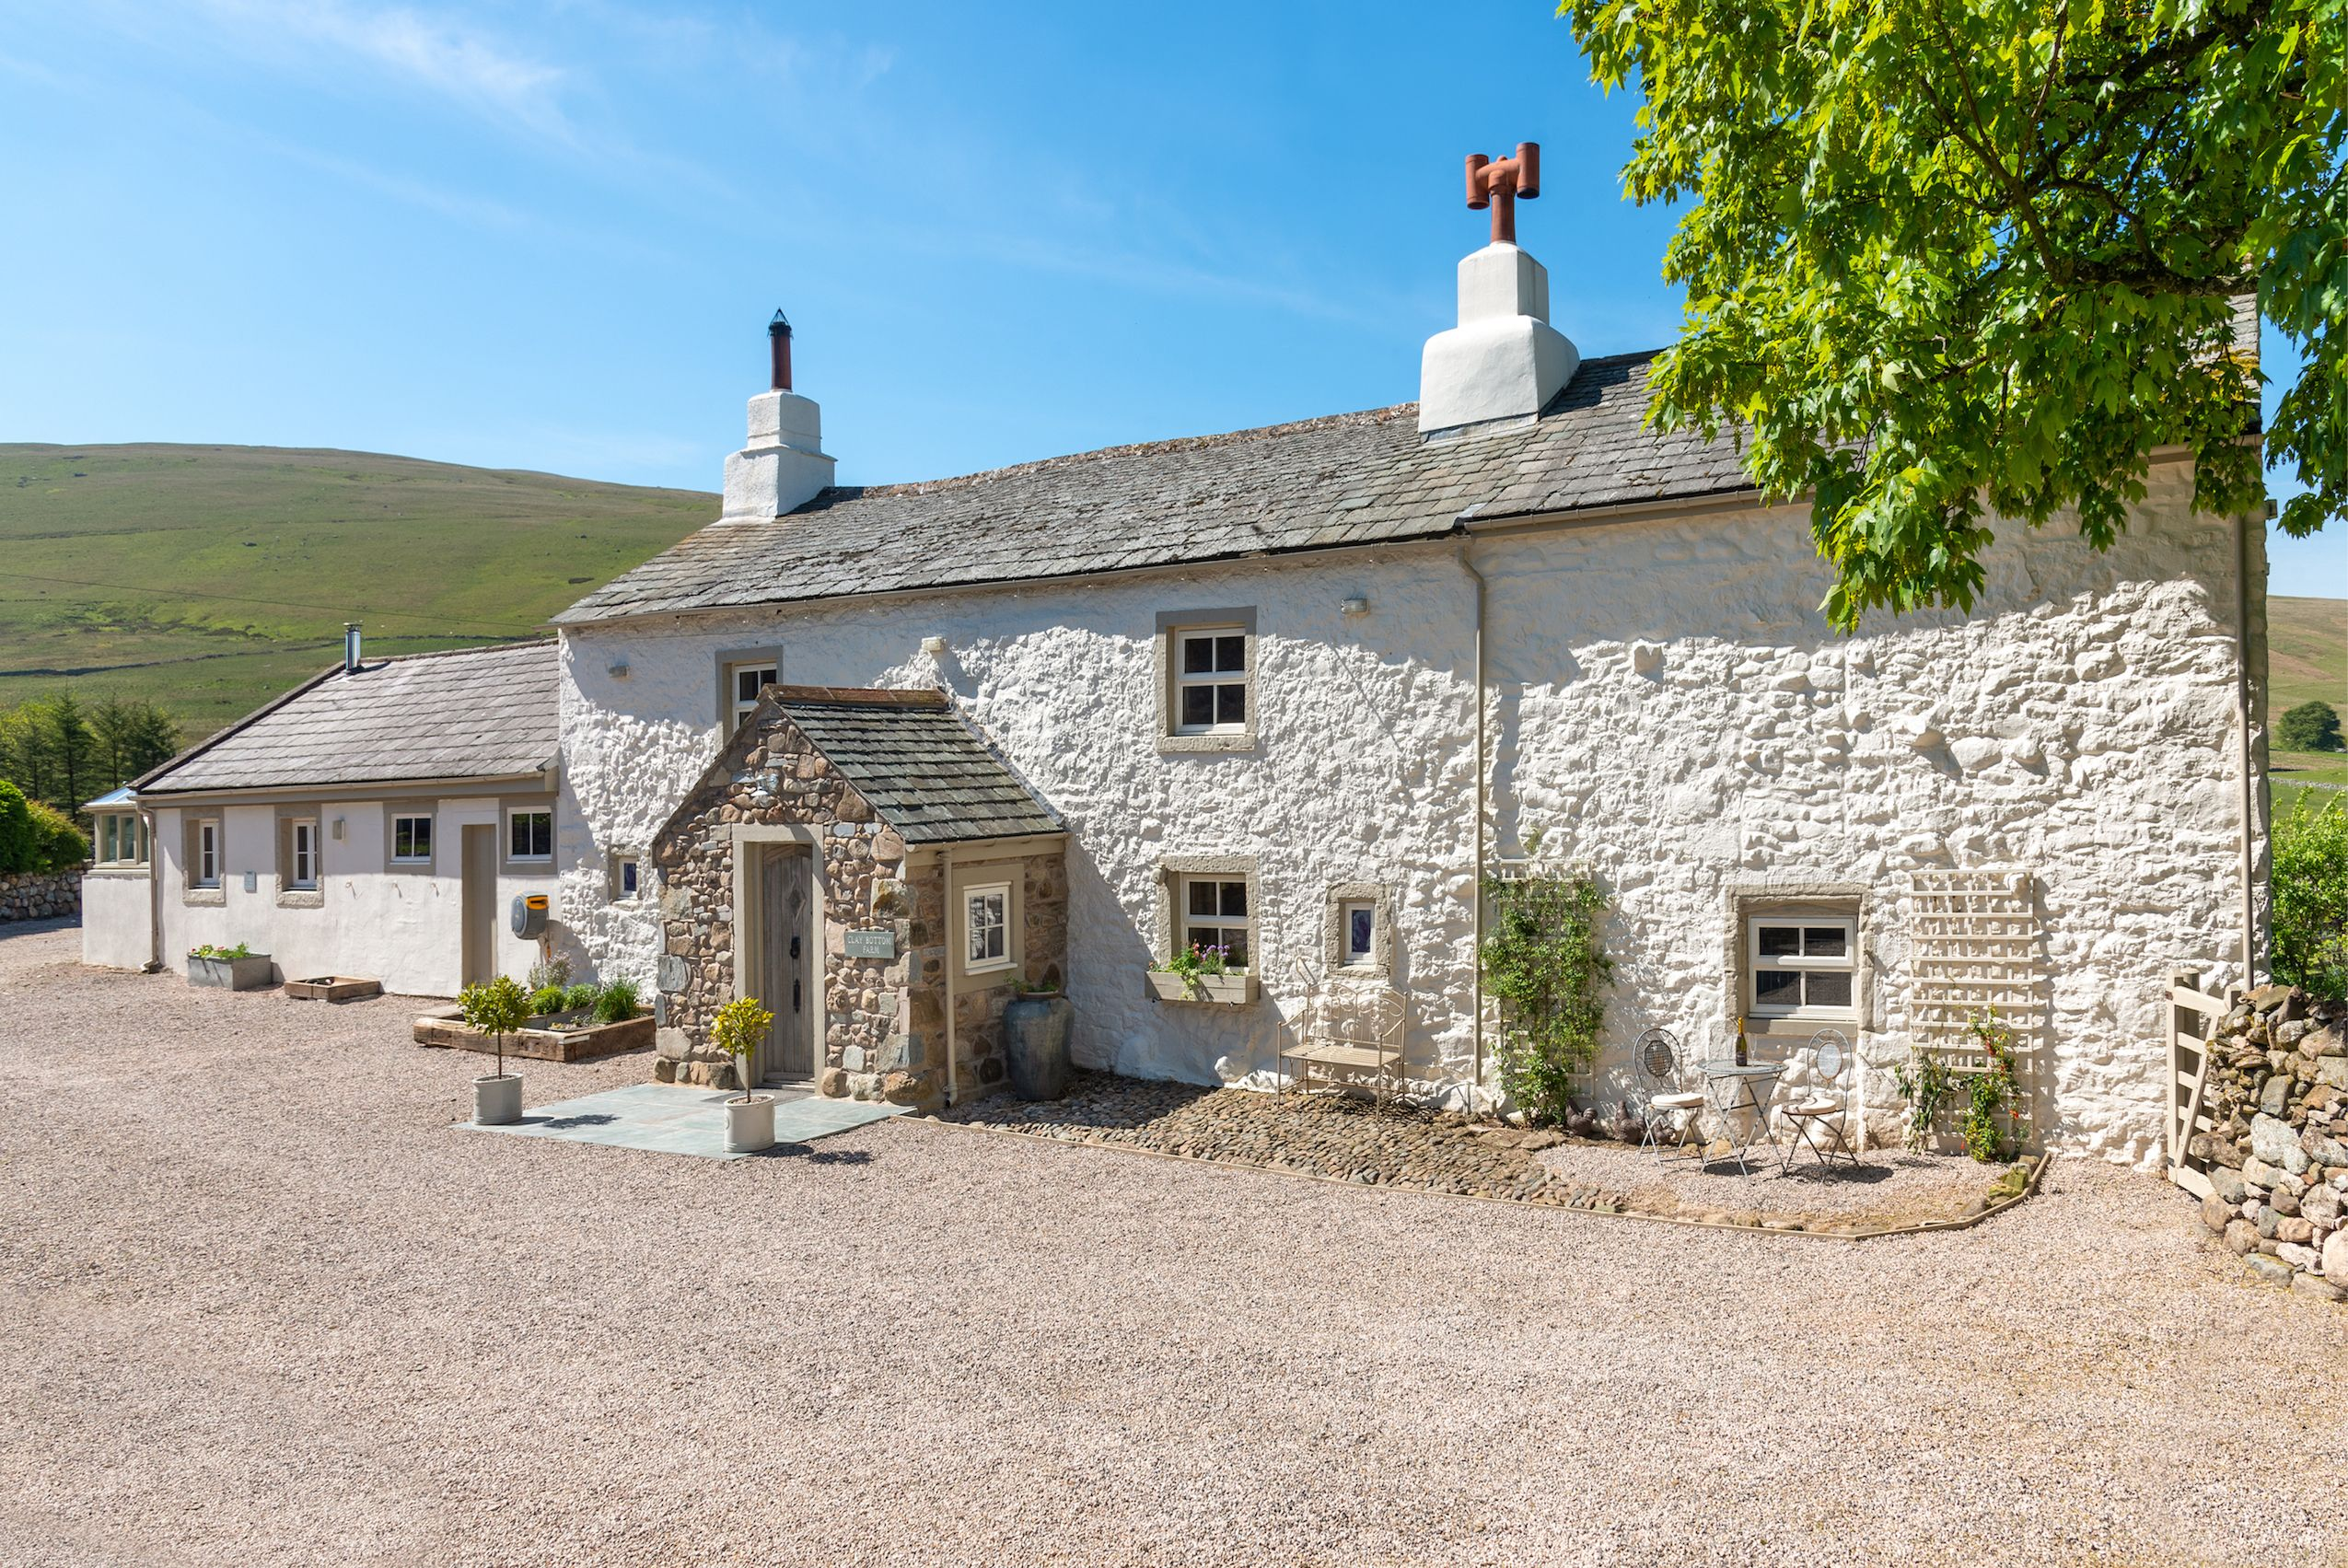 Picturesque 16th century stone-walled cottage for sale in the Lake District National Park